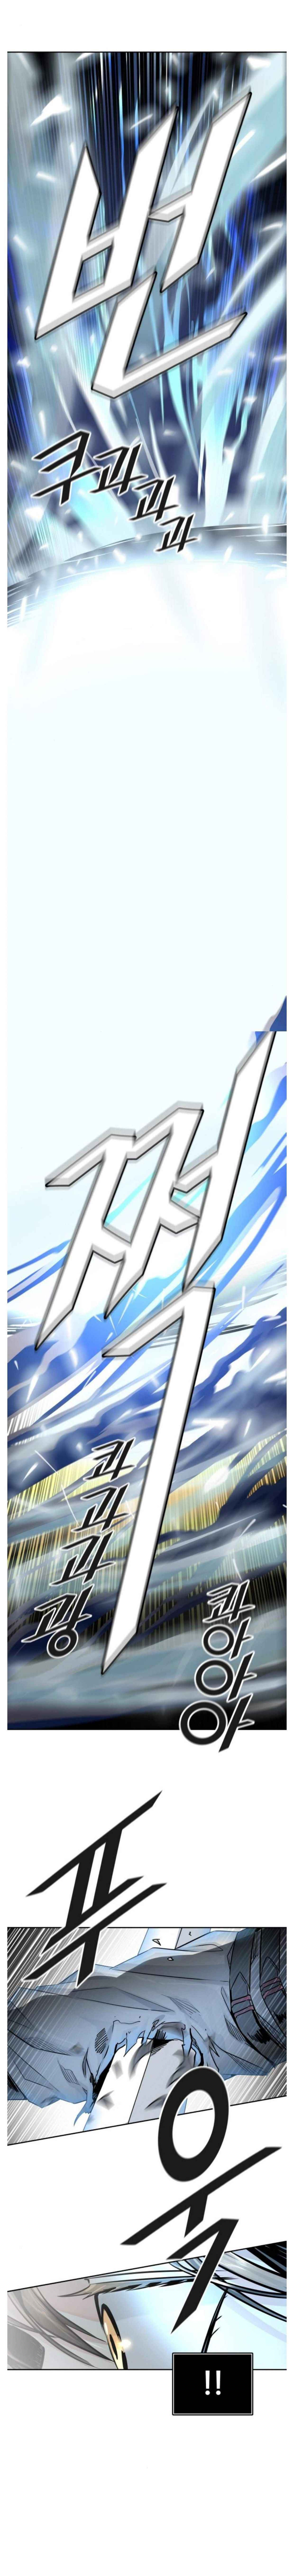 tower of god: Chapter 496 - Page 26